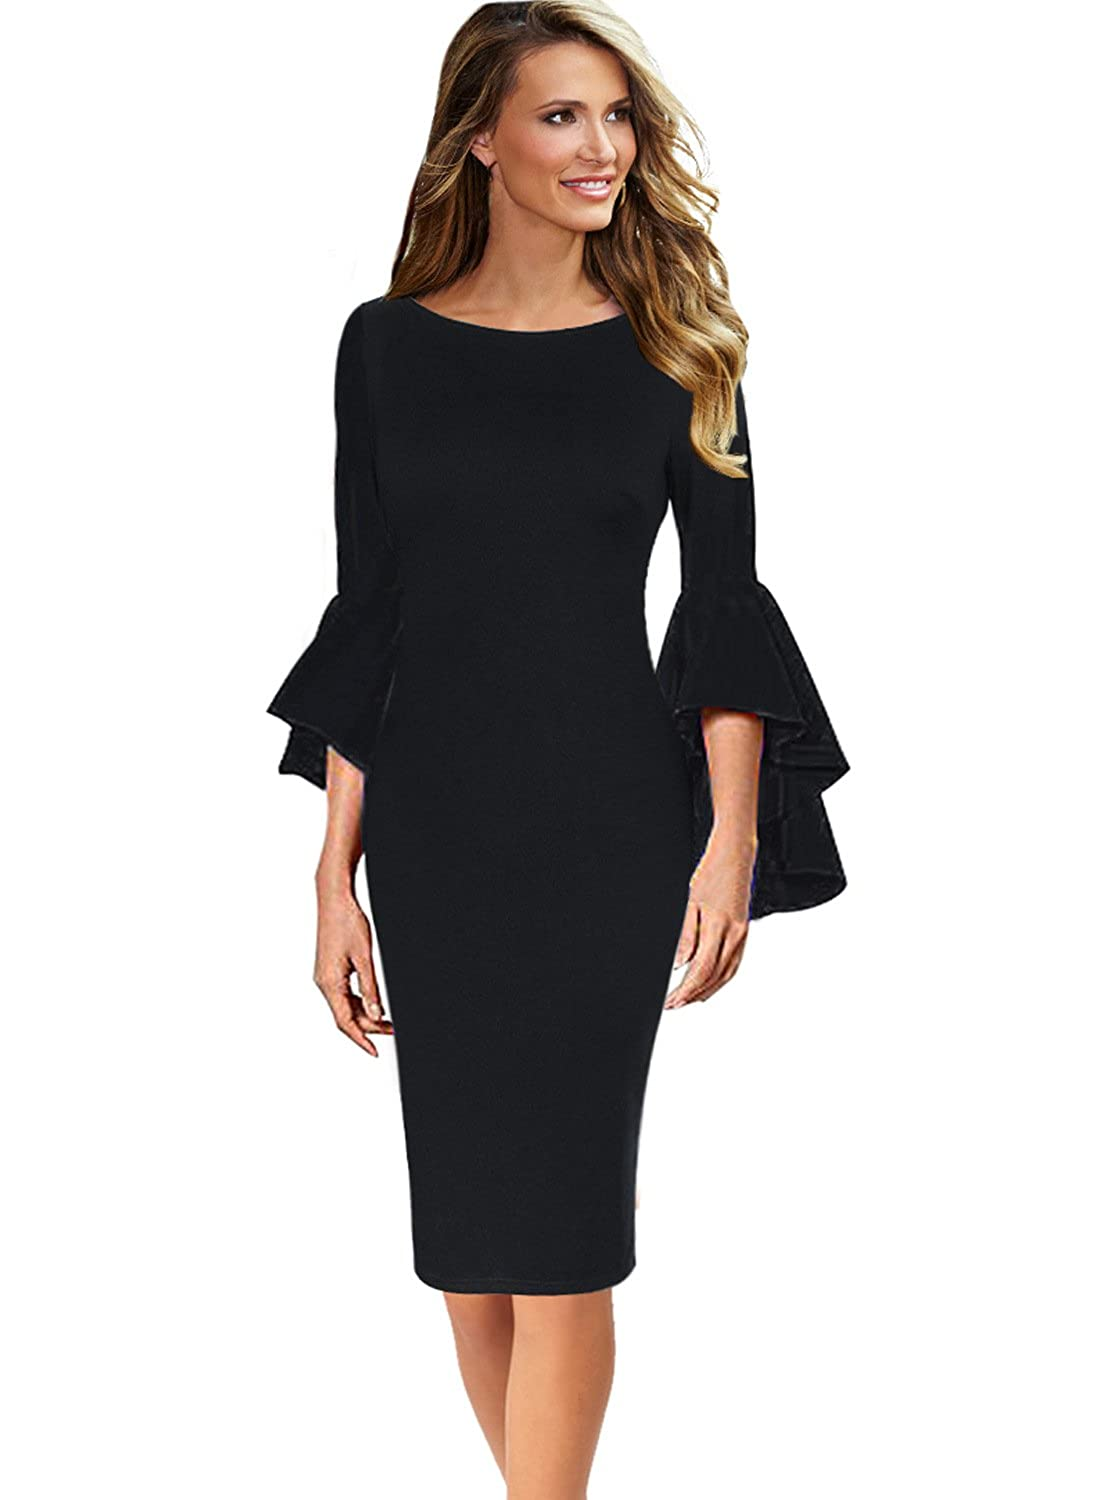 0a98533b VFSHOW Womens Ruffle Bell Sleeves Business Cocktail Party Sheath Dress at  Amazon Women's Clothing store: